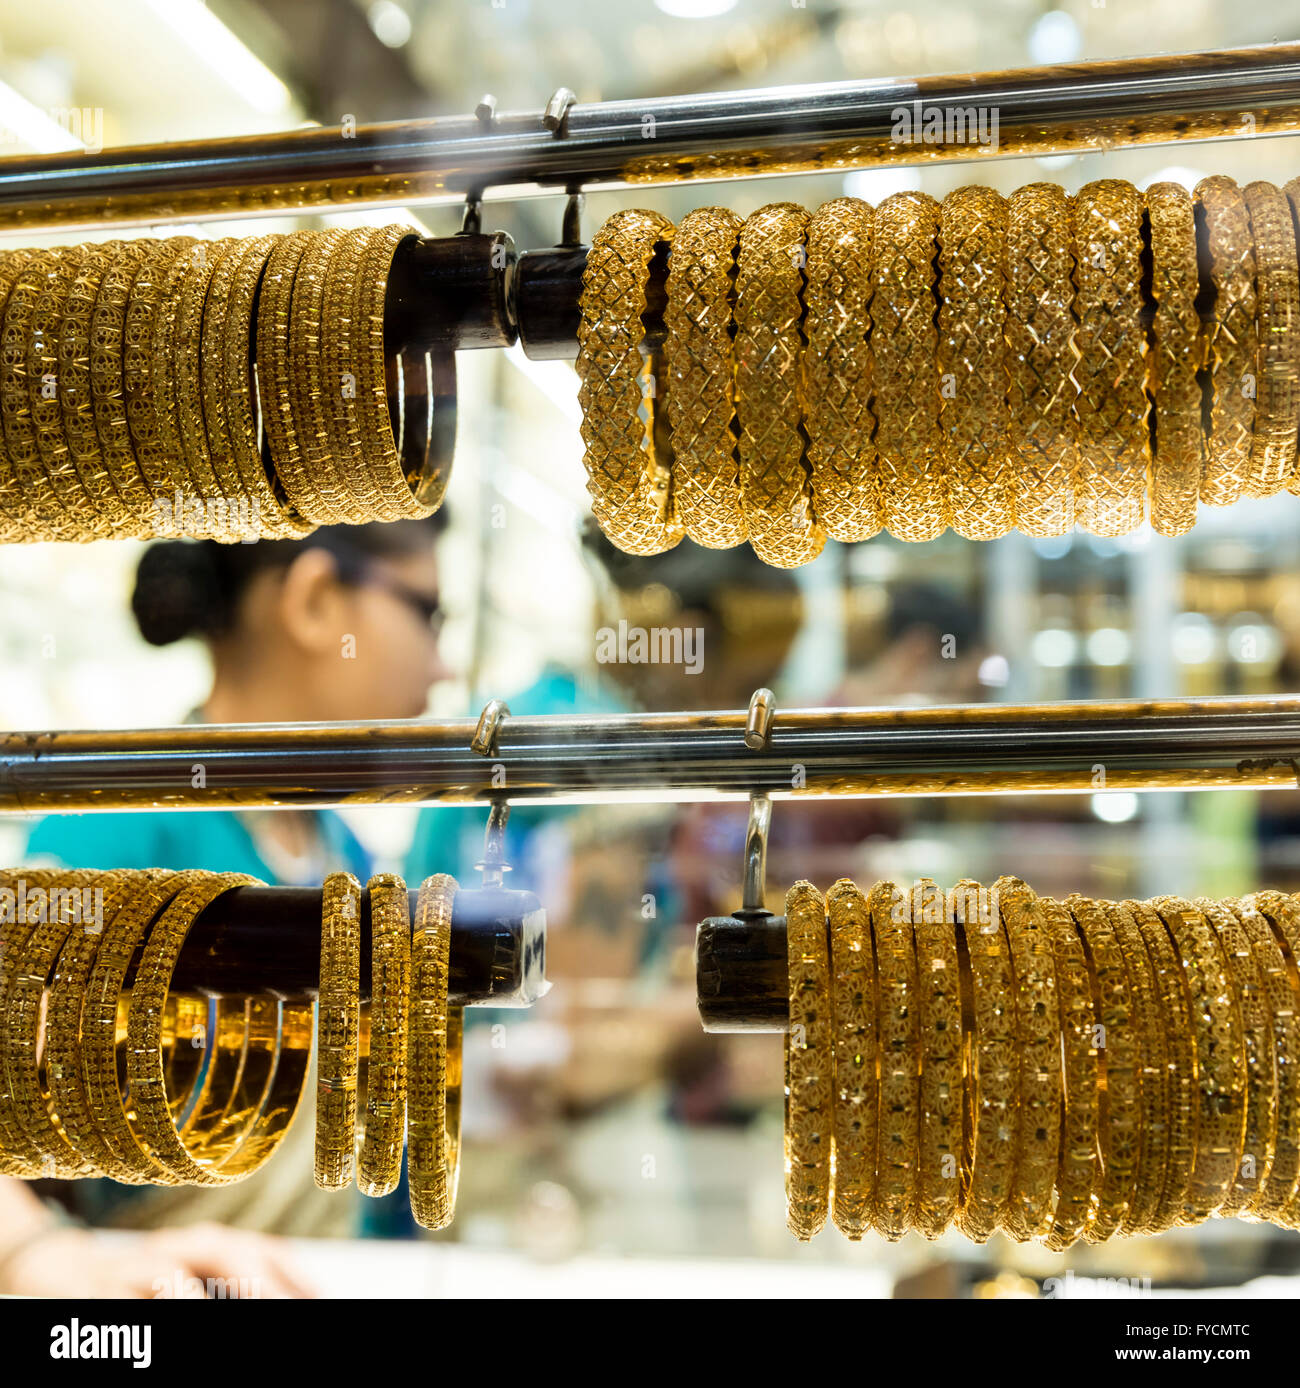 Racks of gold bracelets for sale on display in a shop window, Gold Souq, Al Ras, Dubai, UAE - Stock Image